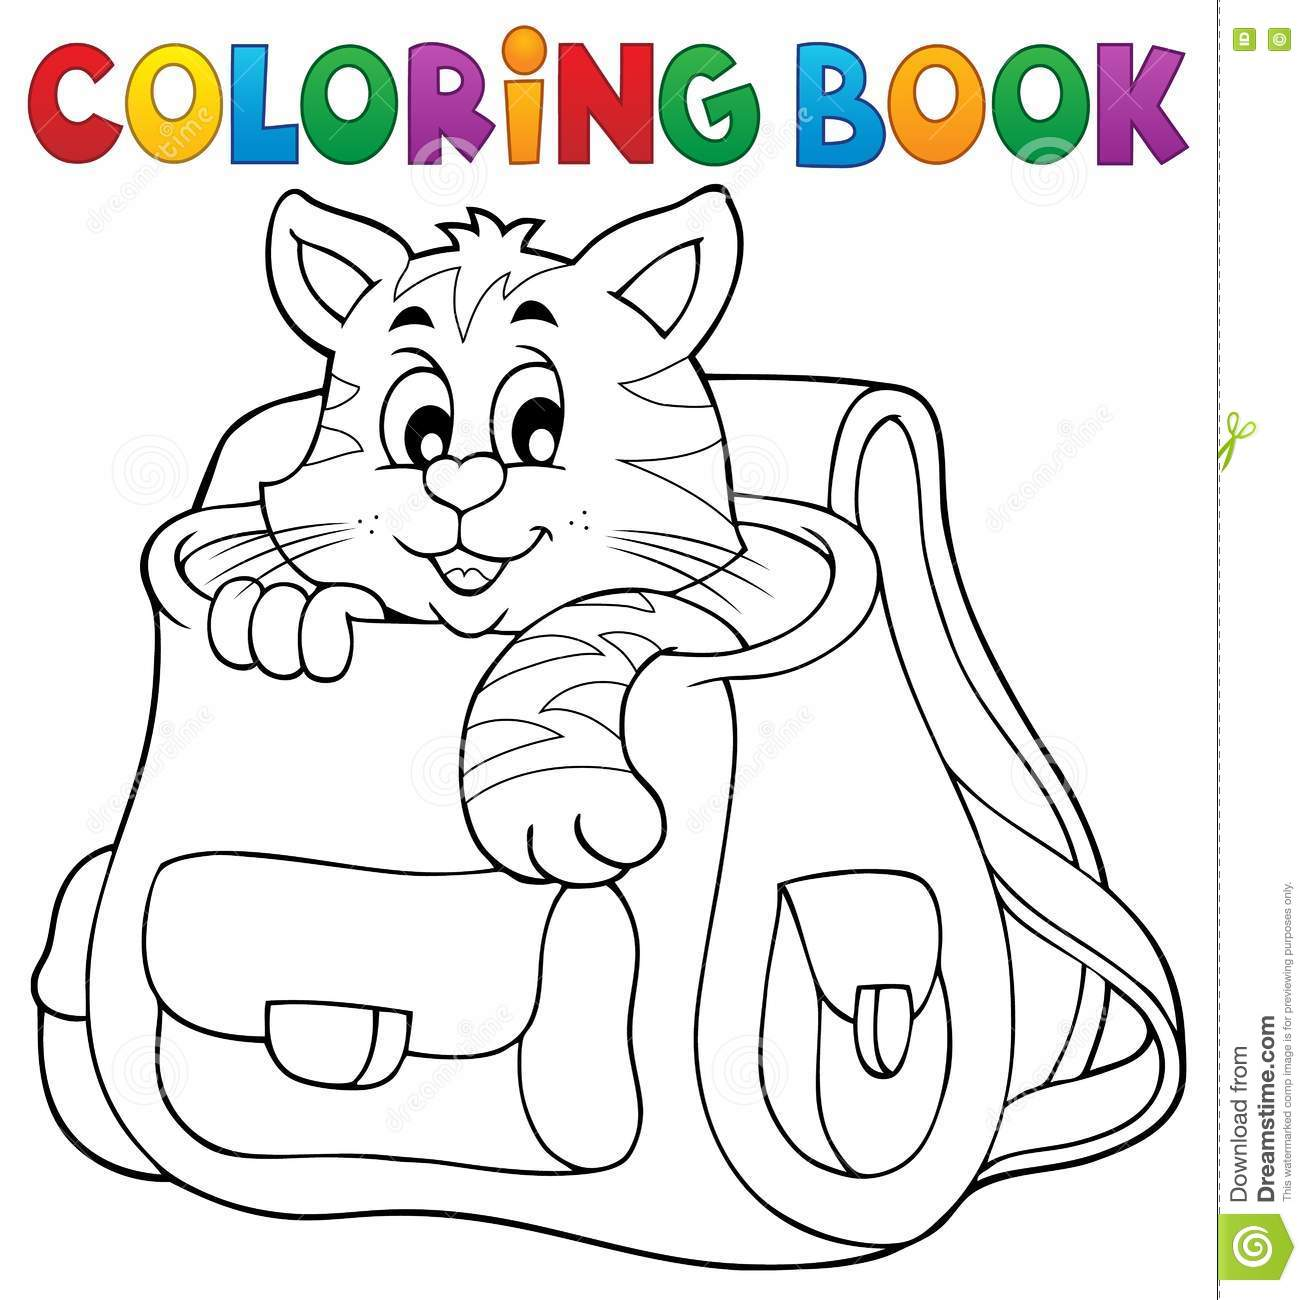 Coloring book bag - Royalty Free Vector Download Coloring Book